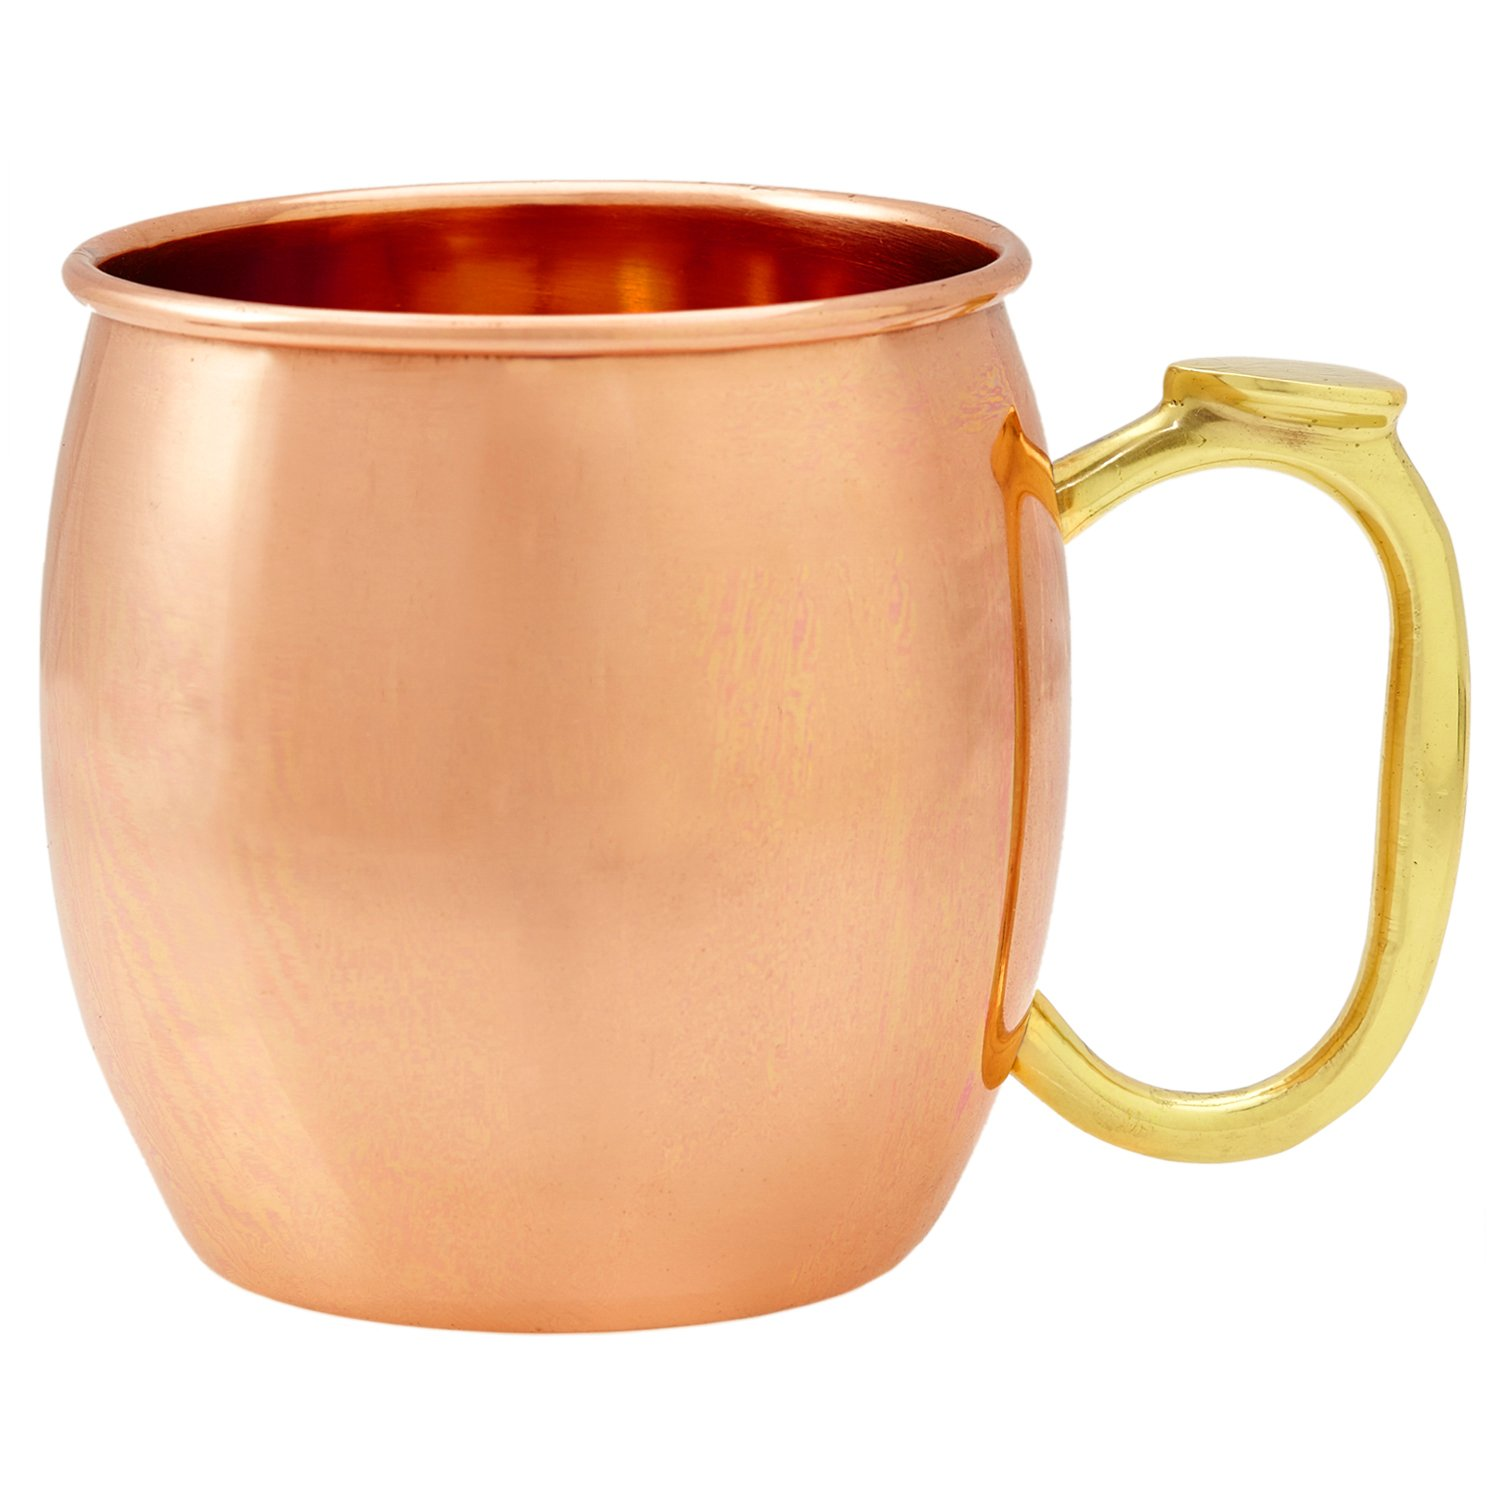 Solid Copper Moscow Mule Mug - Premium 100% Pure Copper 16oz Hammered Barware Cup